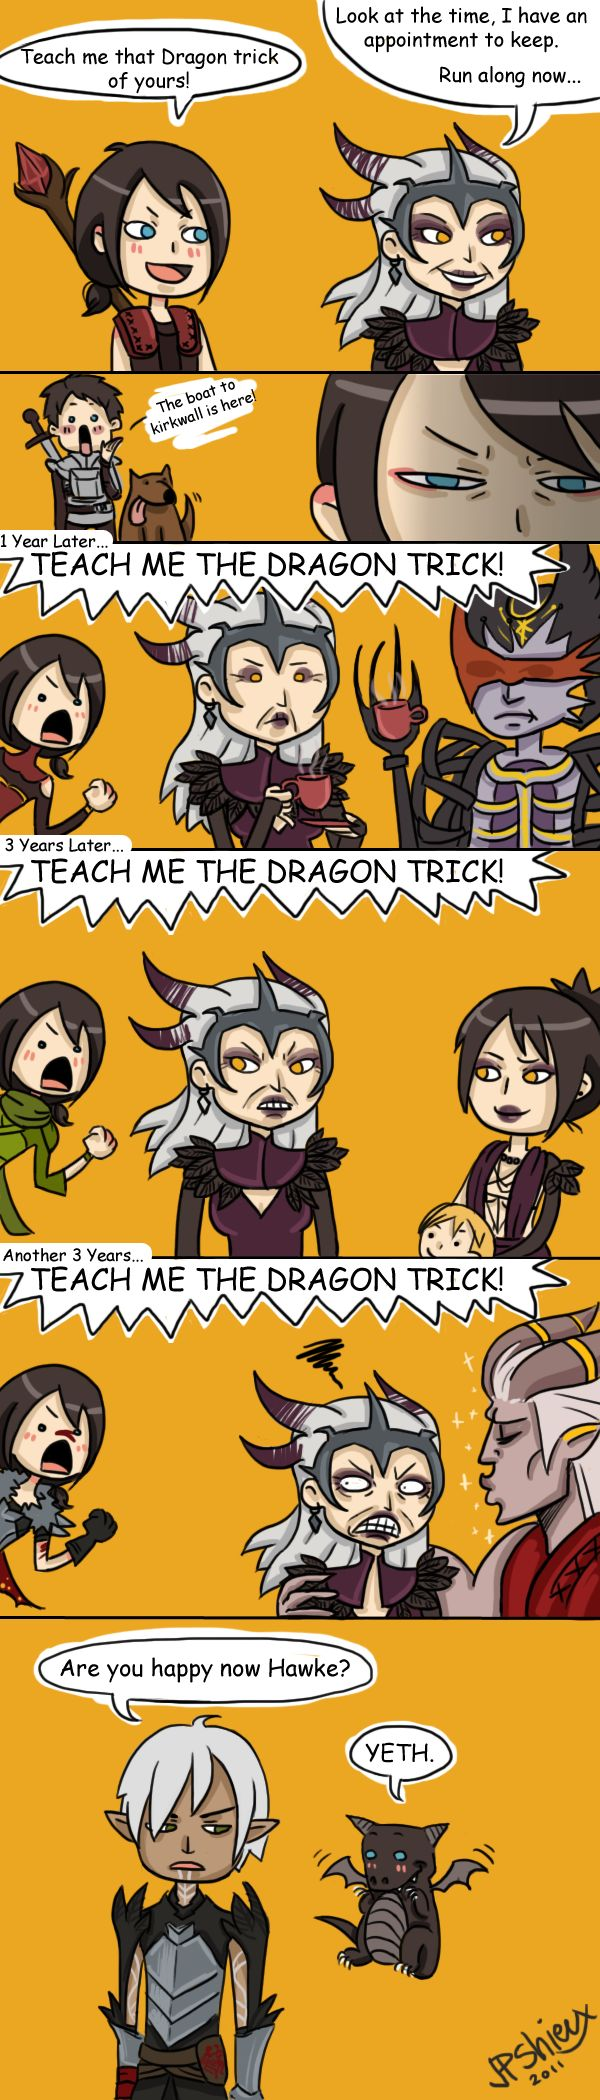 Dragon Trick!!!! I love the look on Fenris's face. Like Hawke has been ignoring his talks to giggle about the dragon trick for 10 years